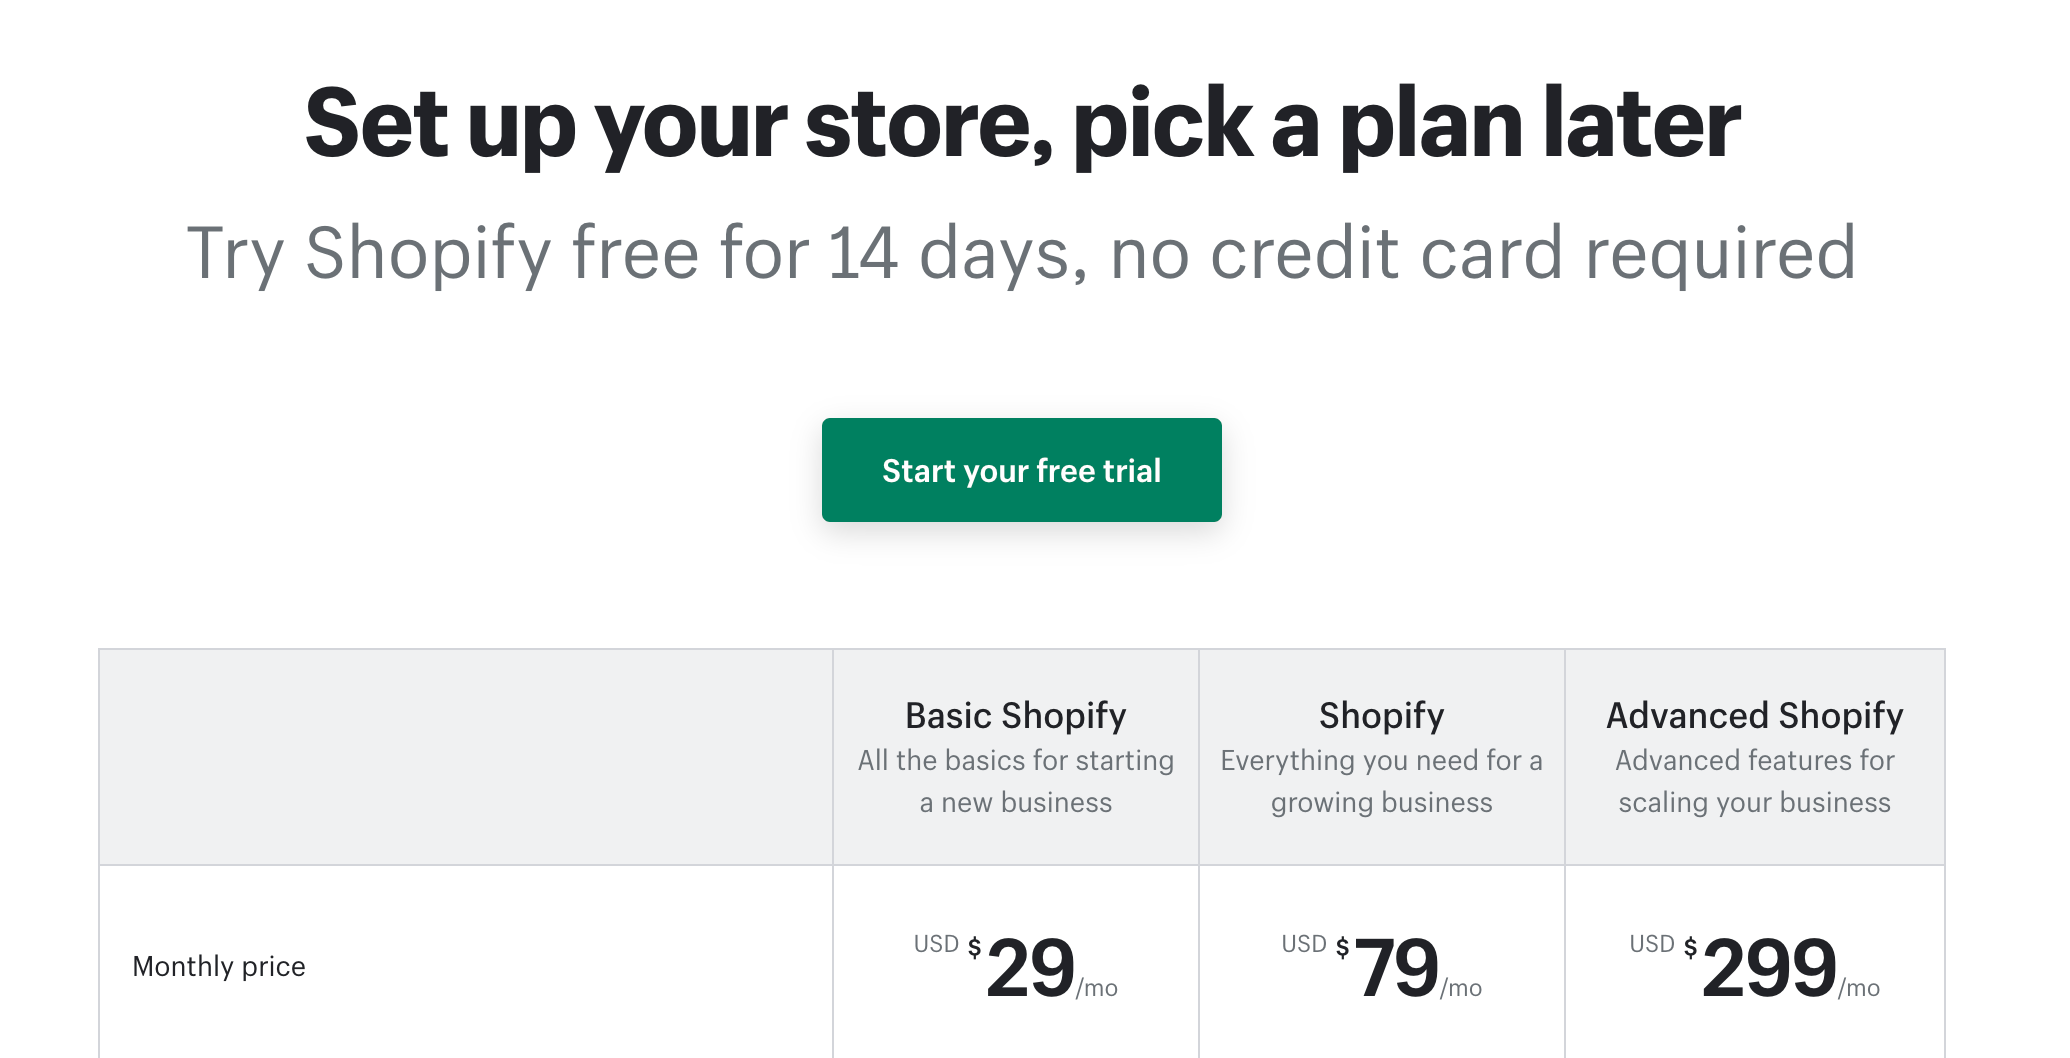 How much does Shopify cost?